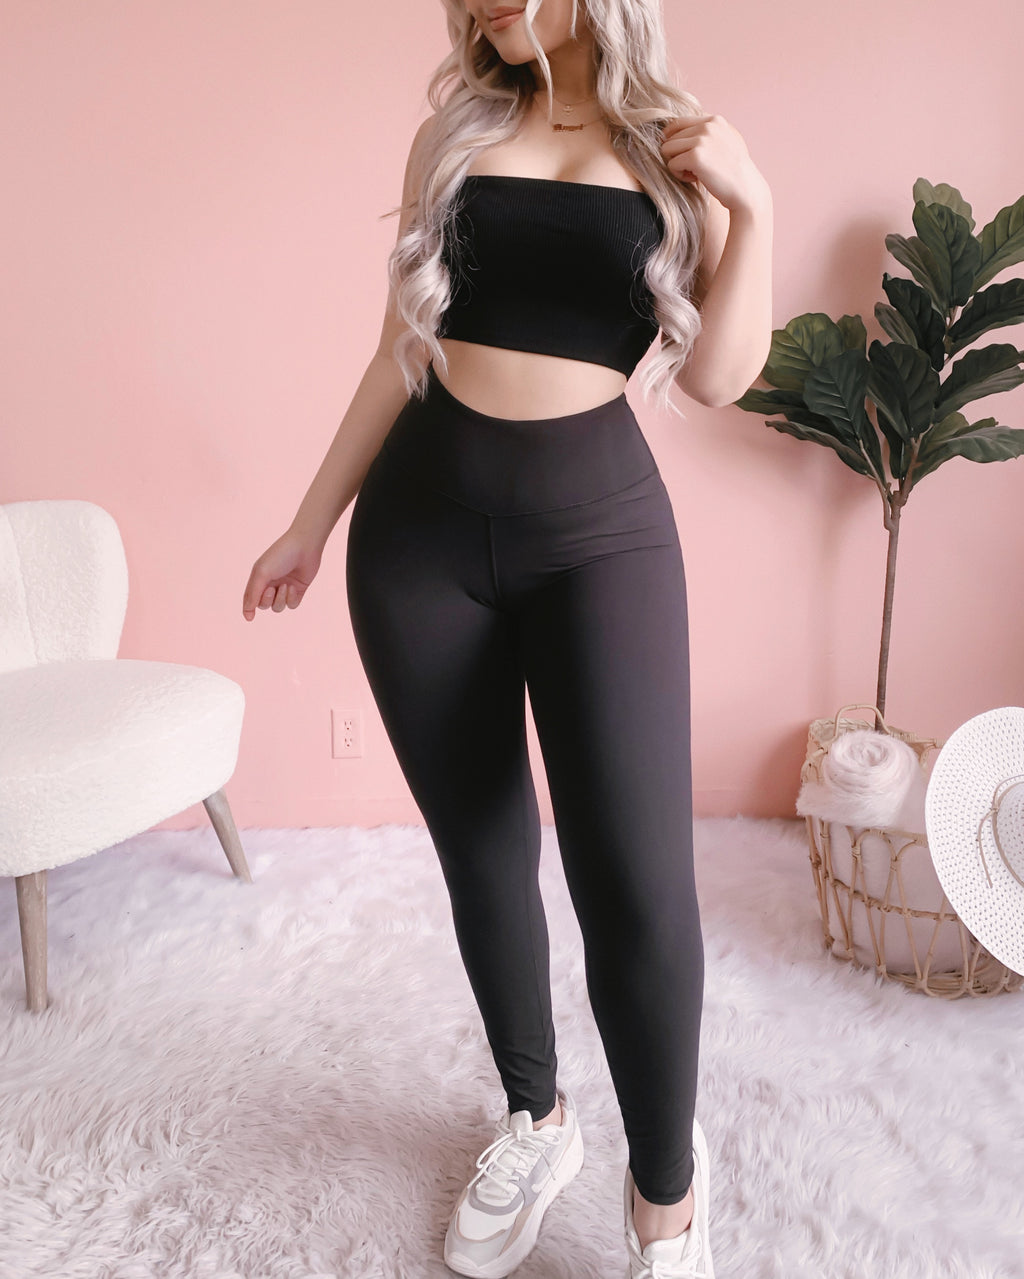 SOFT AS BUTTER HIGH-WAIST LEGGINGS W/ FRONT POCKET!! (BLACK)